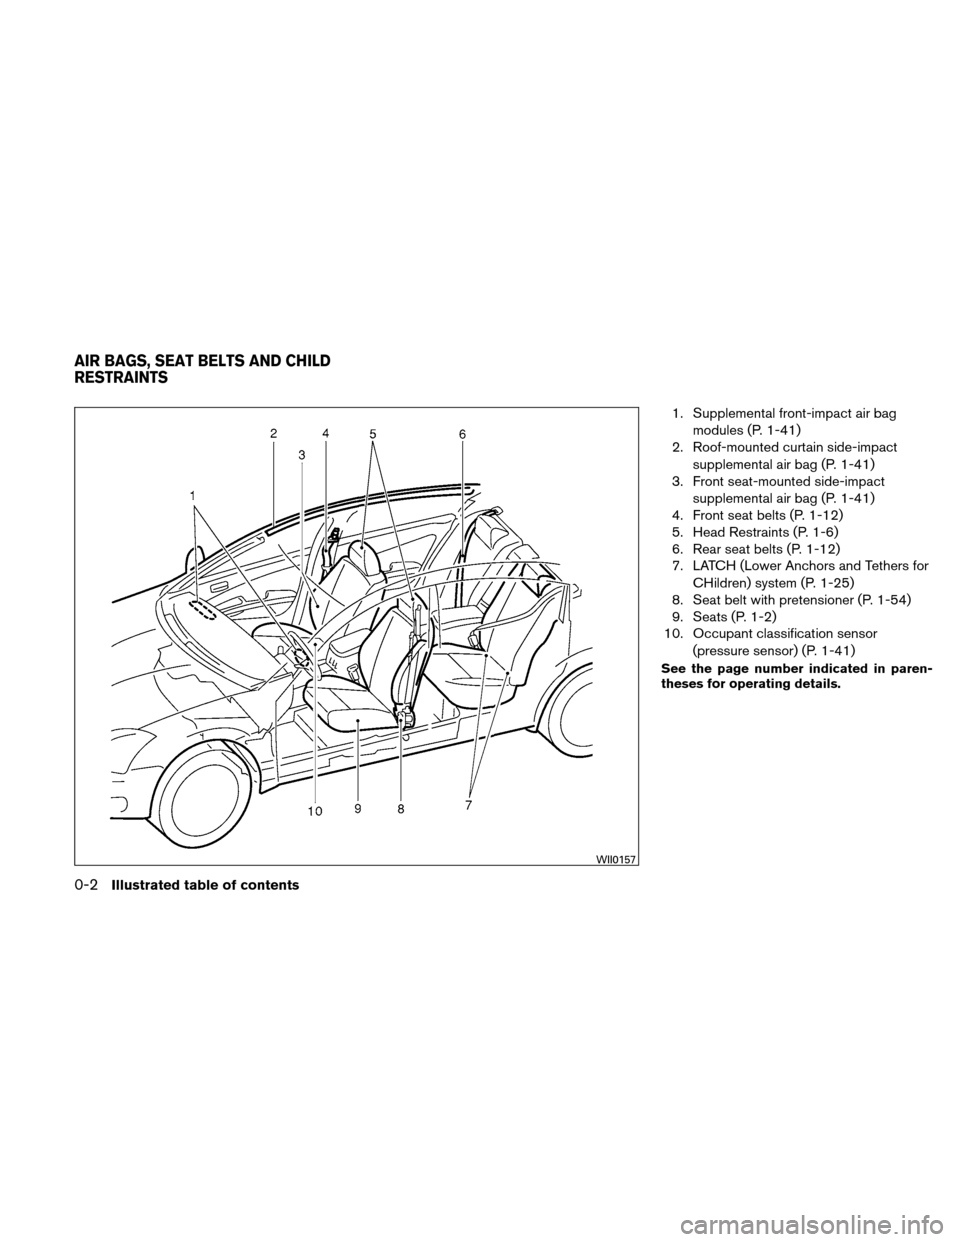 NISSAN VERSA HATCHBACK 2010 1.G Owners Manual, Page 9